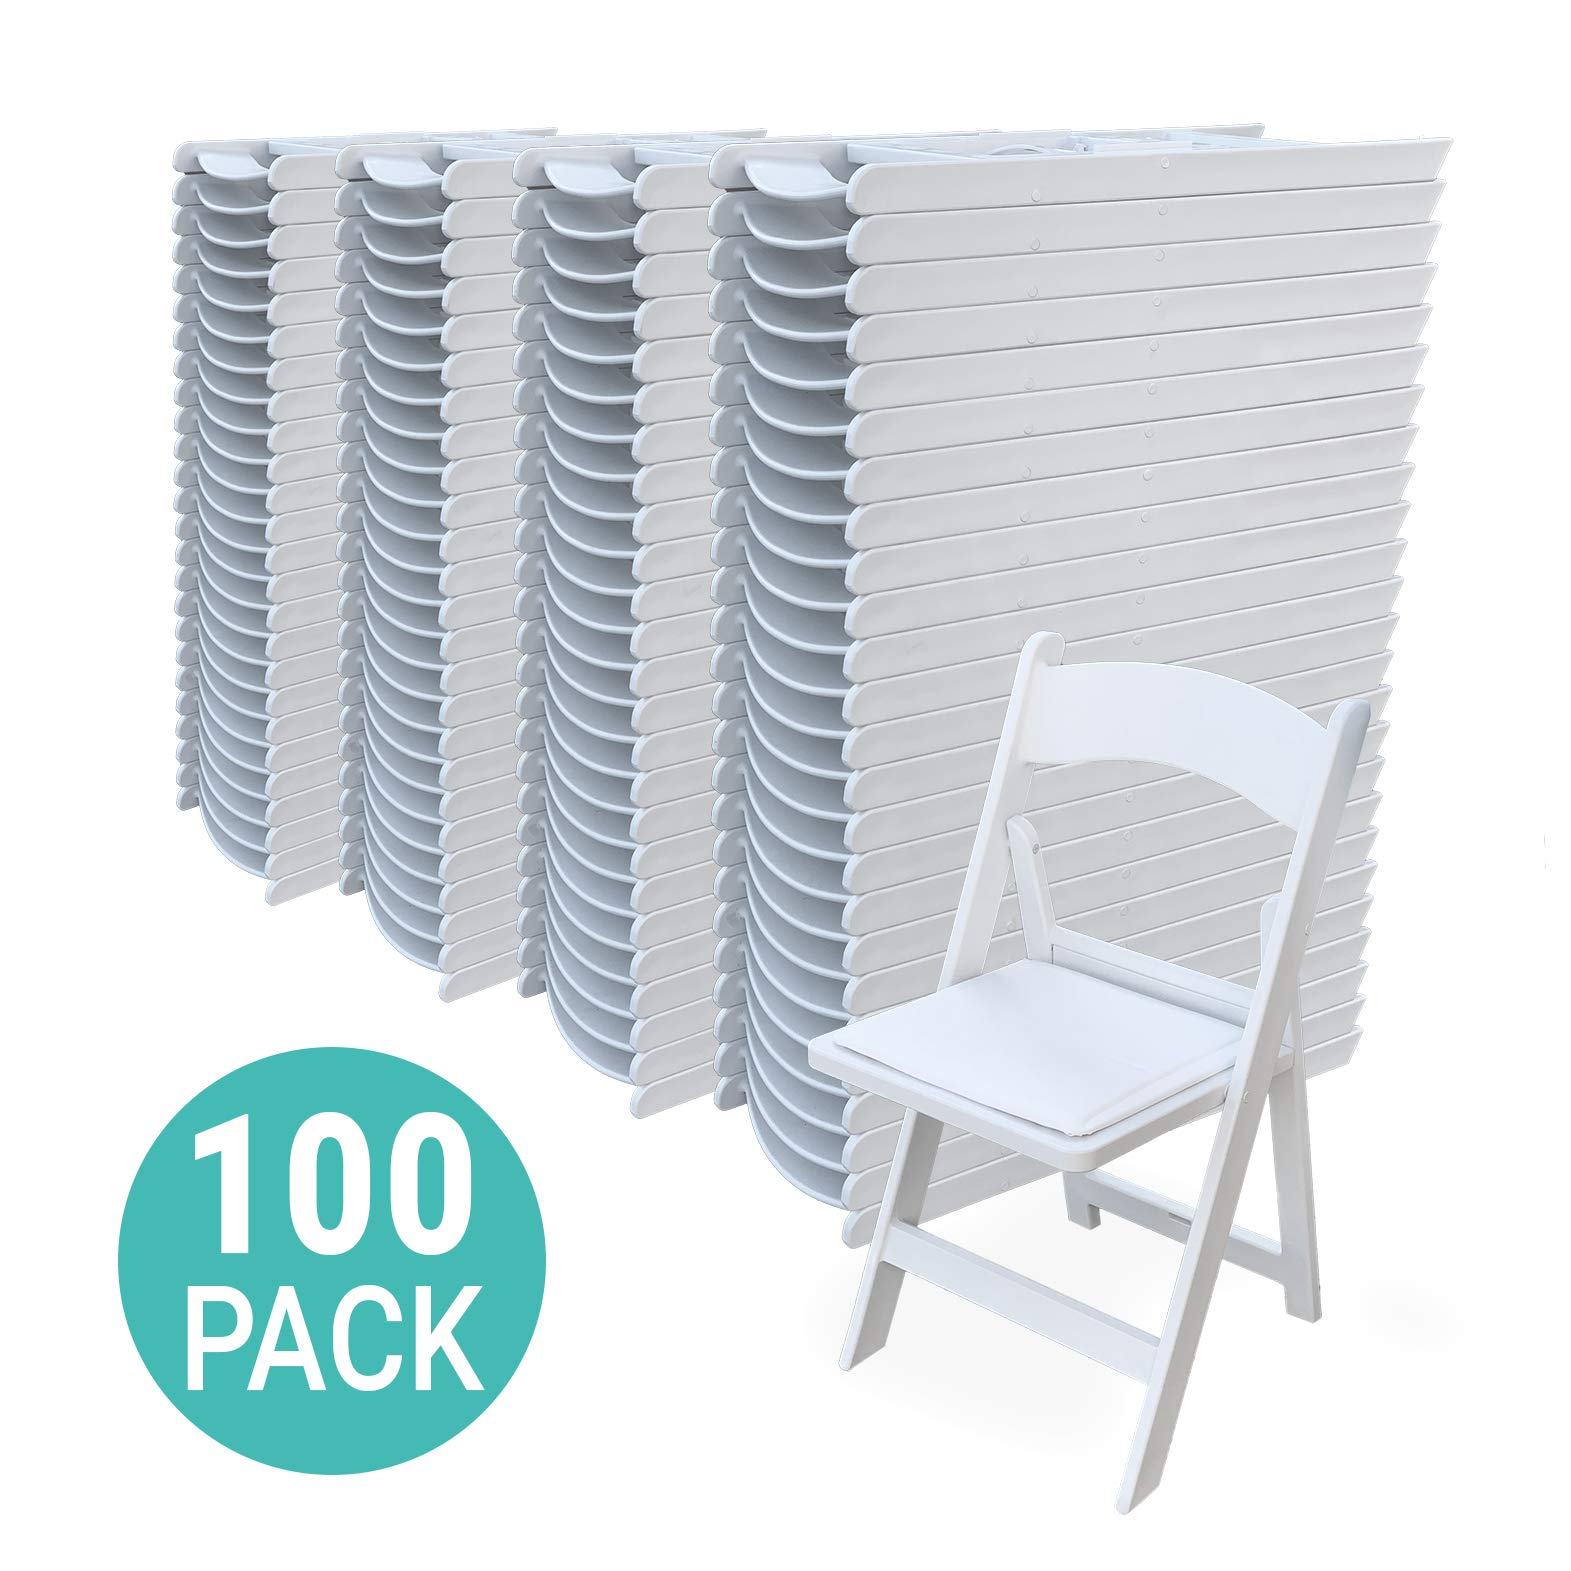 EventStable TitanPRO Resin Folding Chair - White, 100-Pack by EventStable